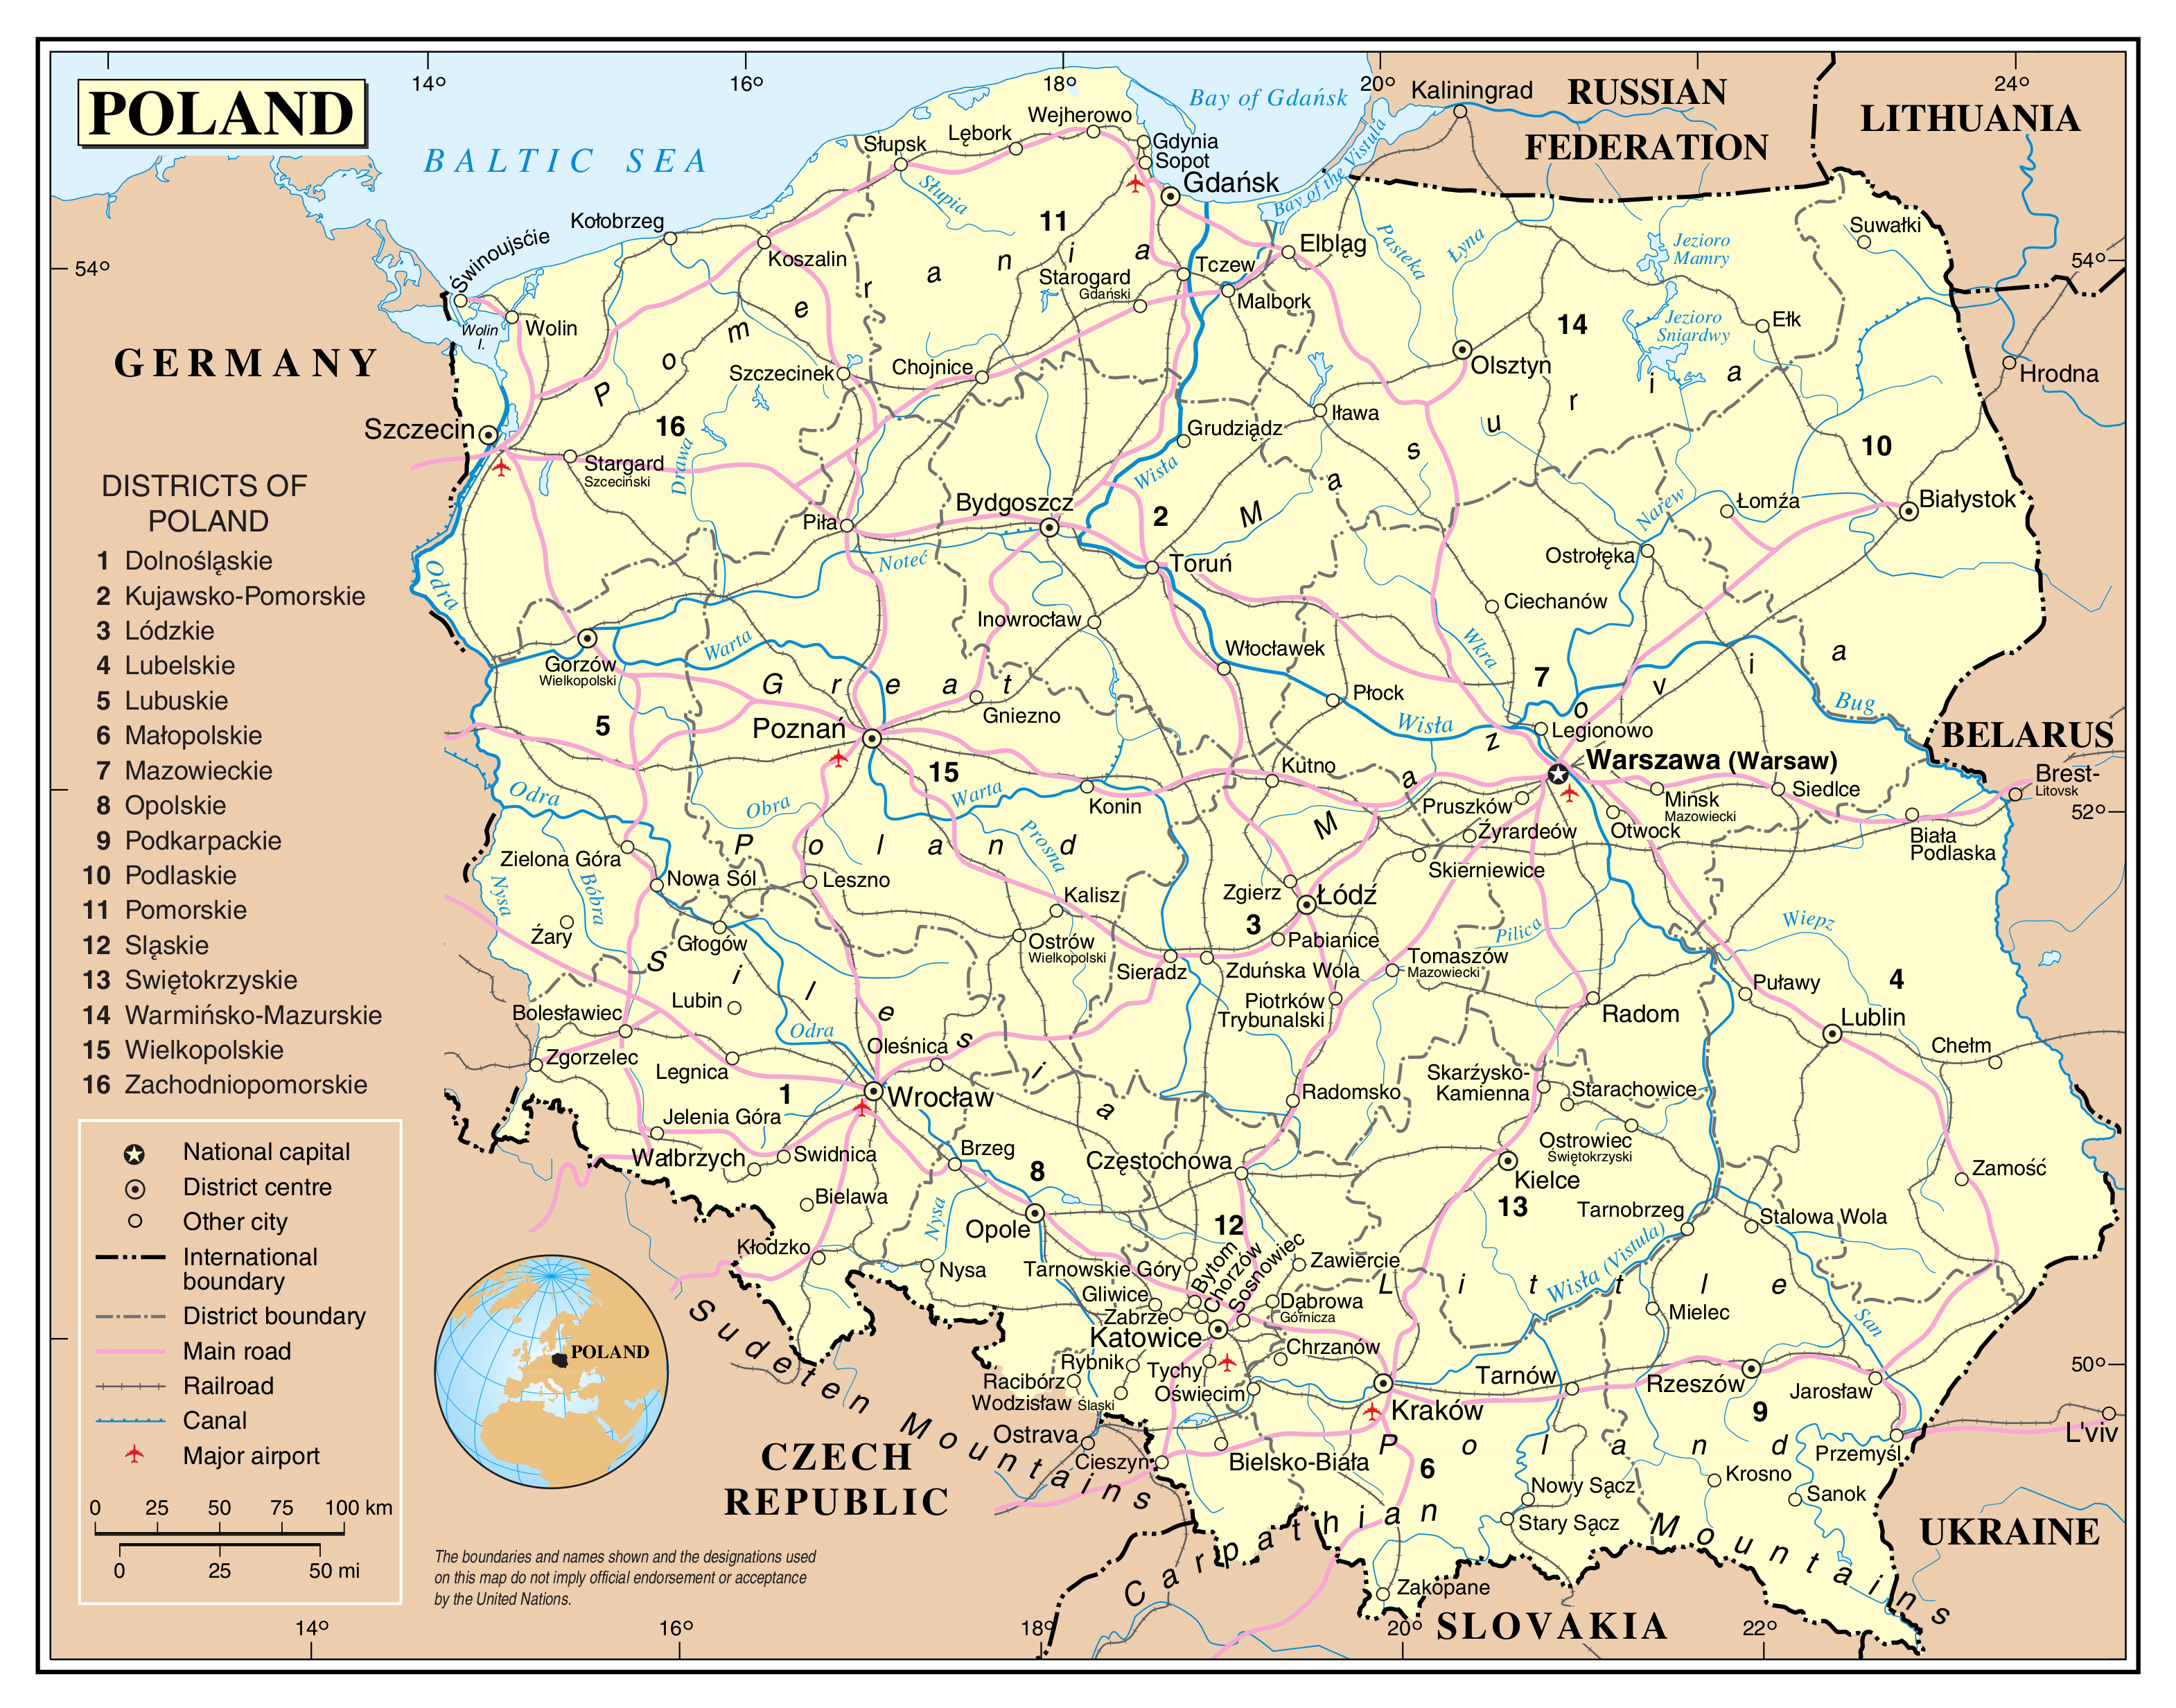 Large Detailed Political And Administrative Map Of Poland With - Poland political map